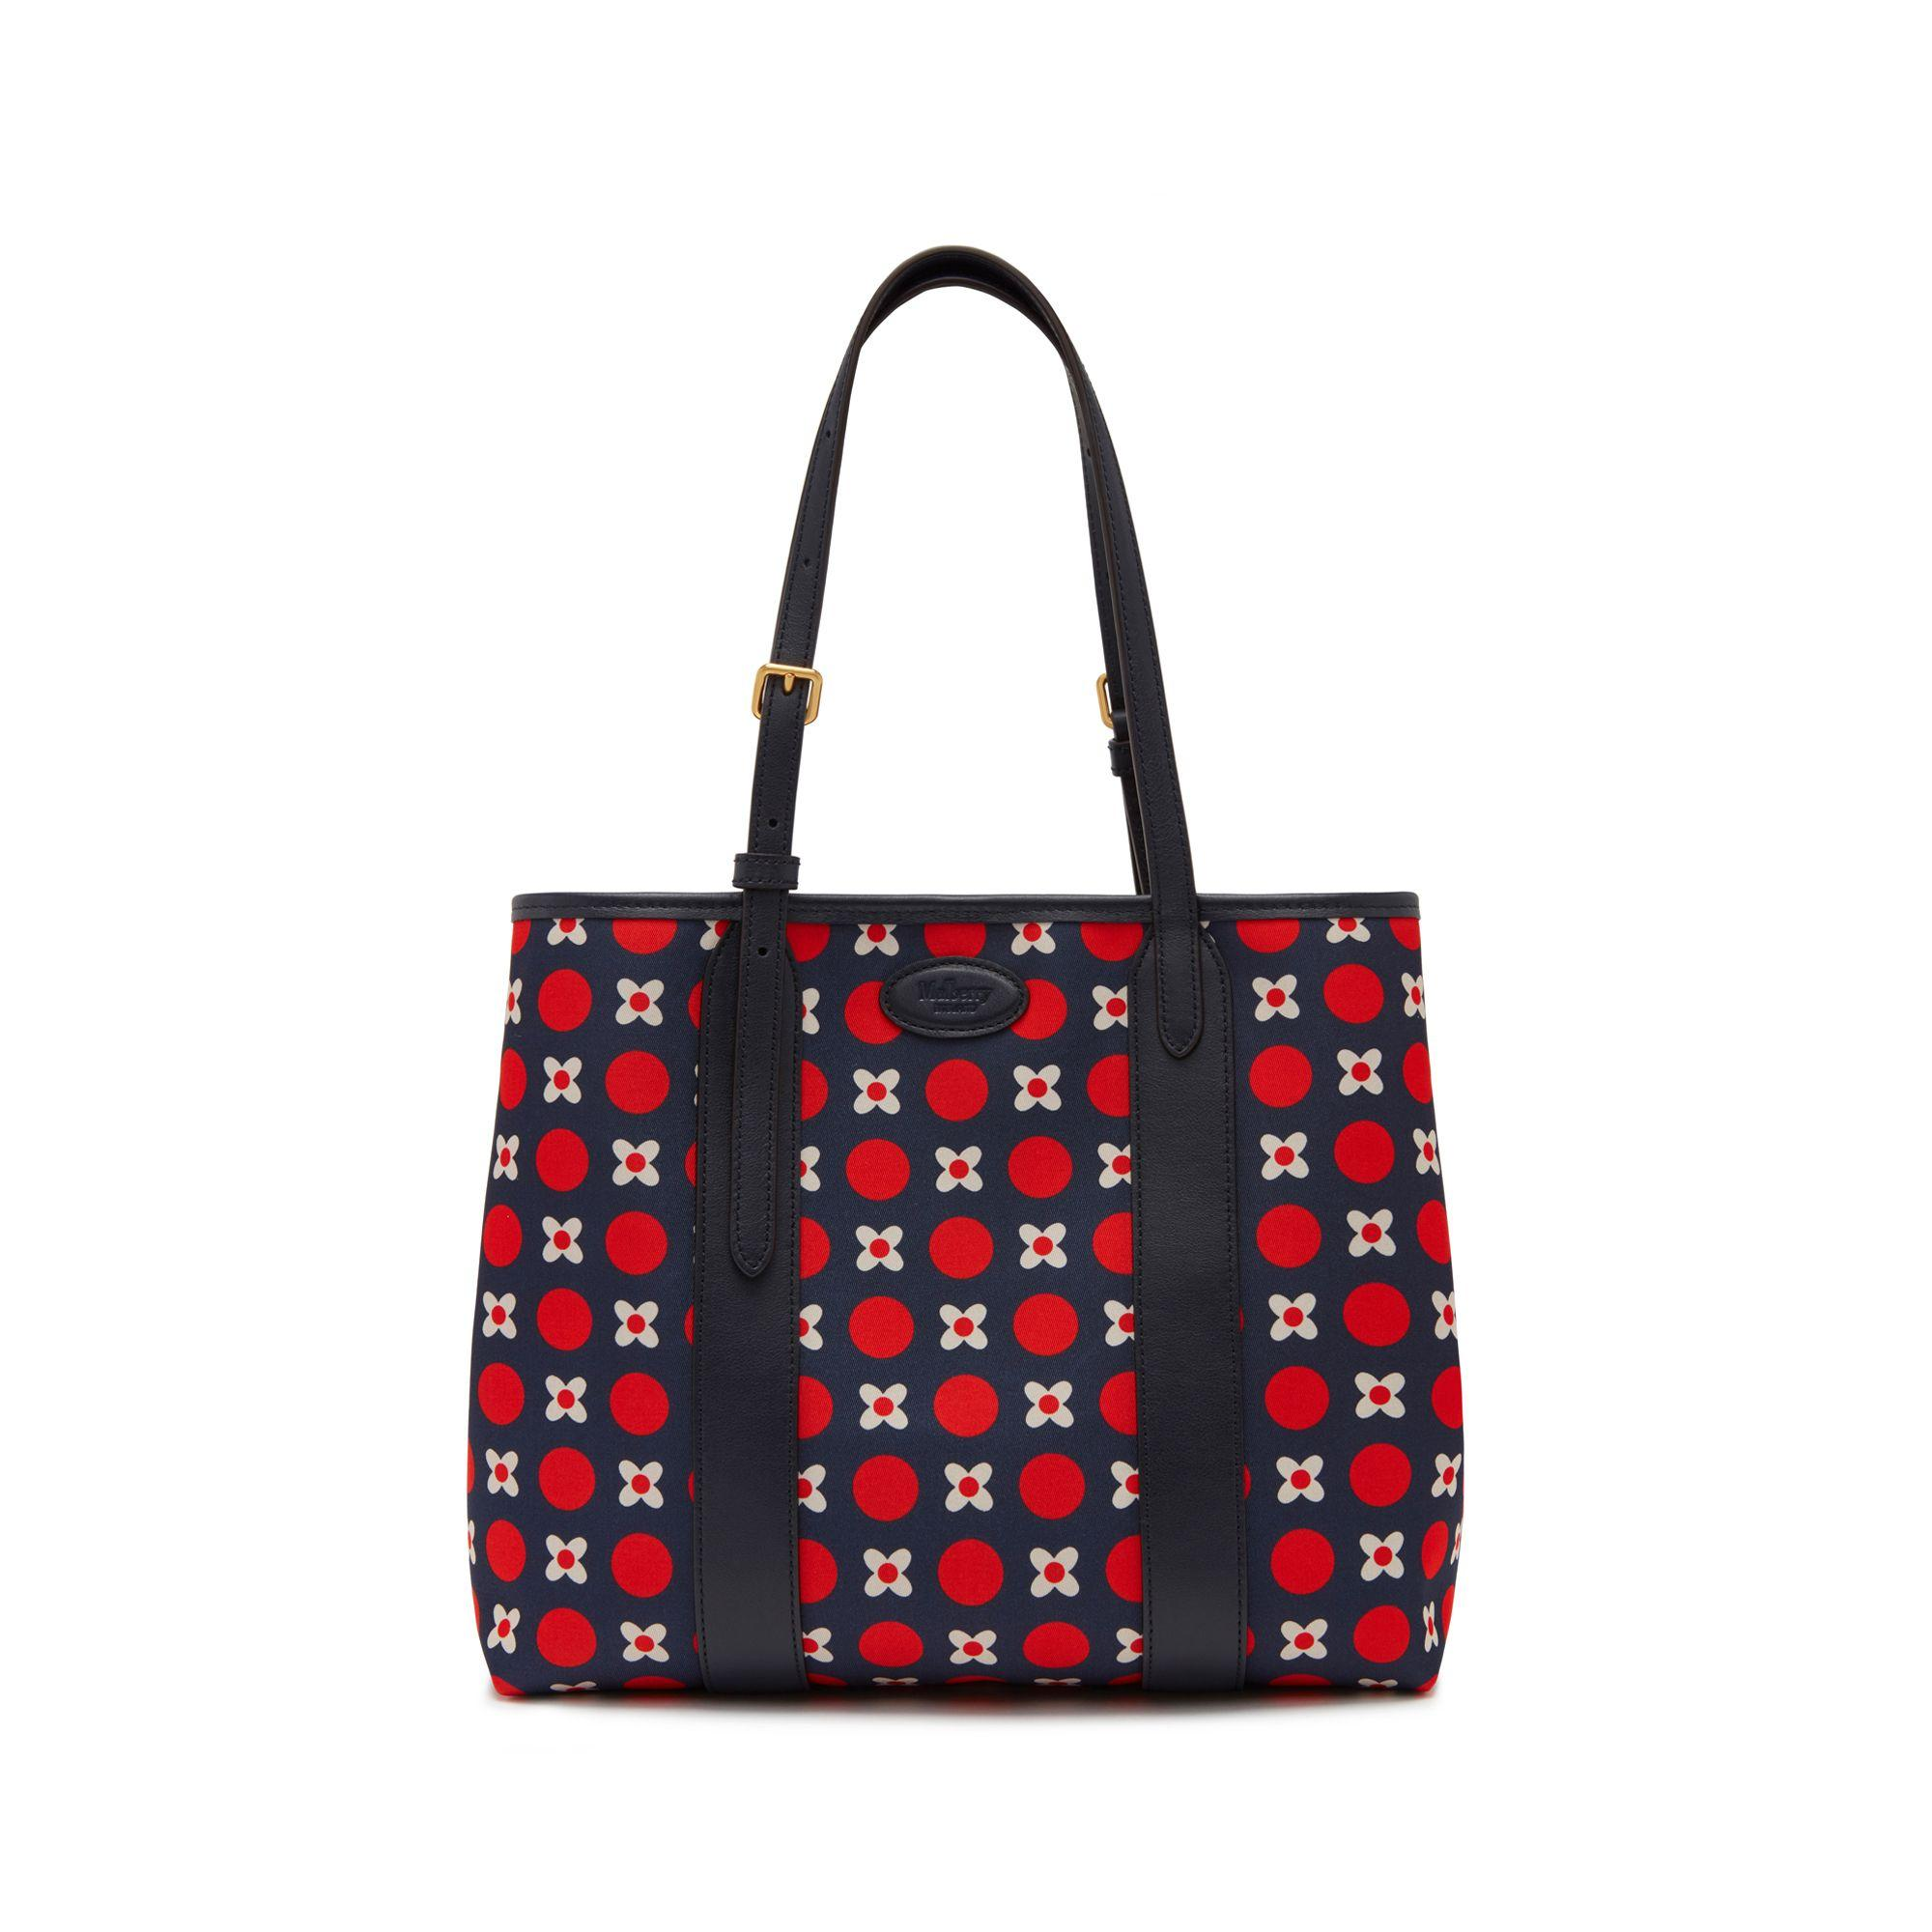 2051a07ffa3a Mulberry. Women s Blue Small Bayswater Tote In Midnight Geo Floral Canvas  And Silky Calf